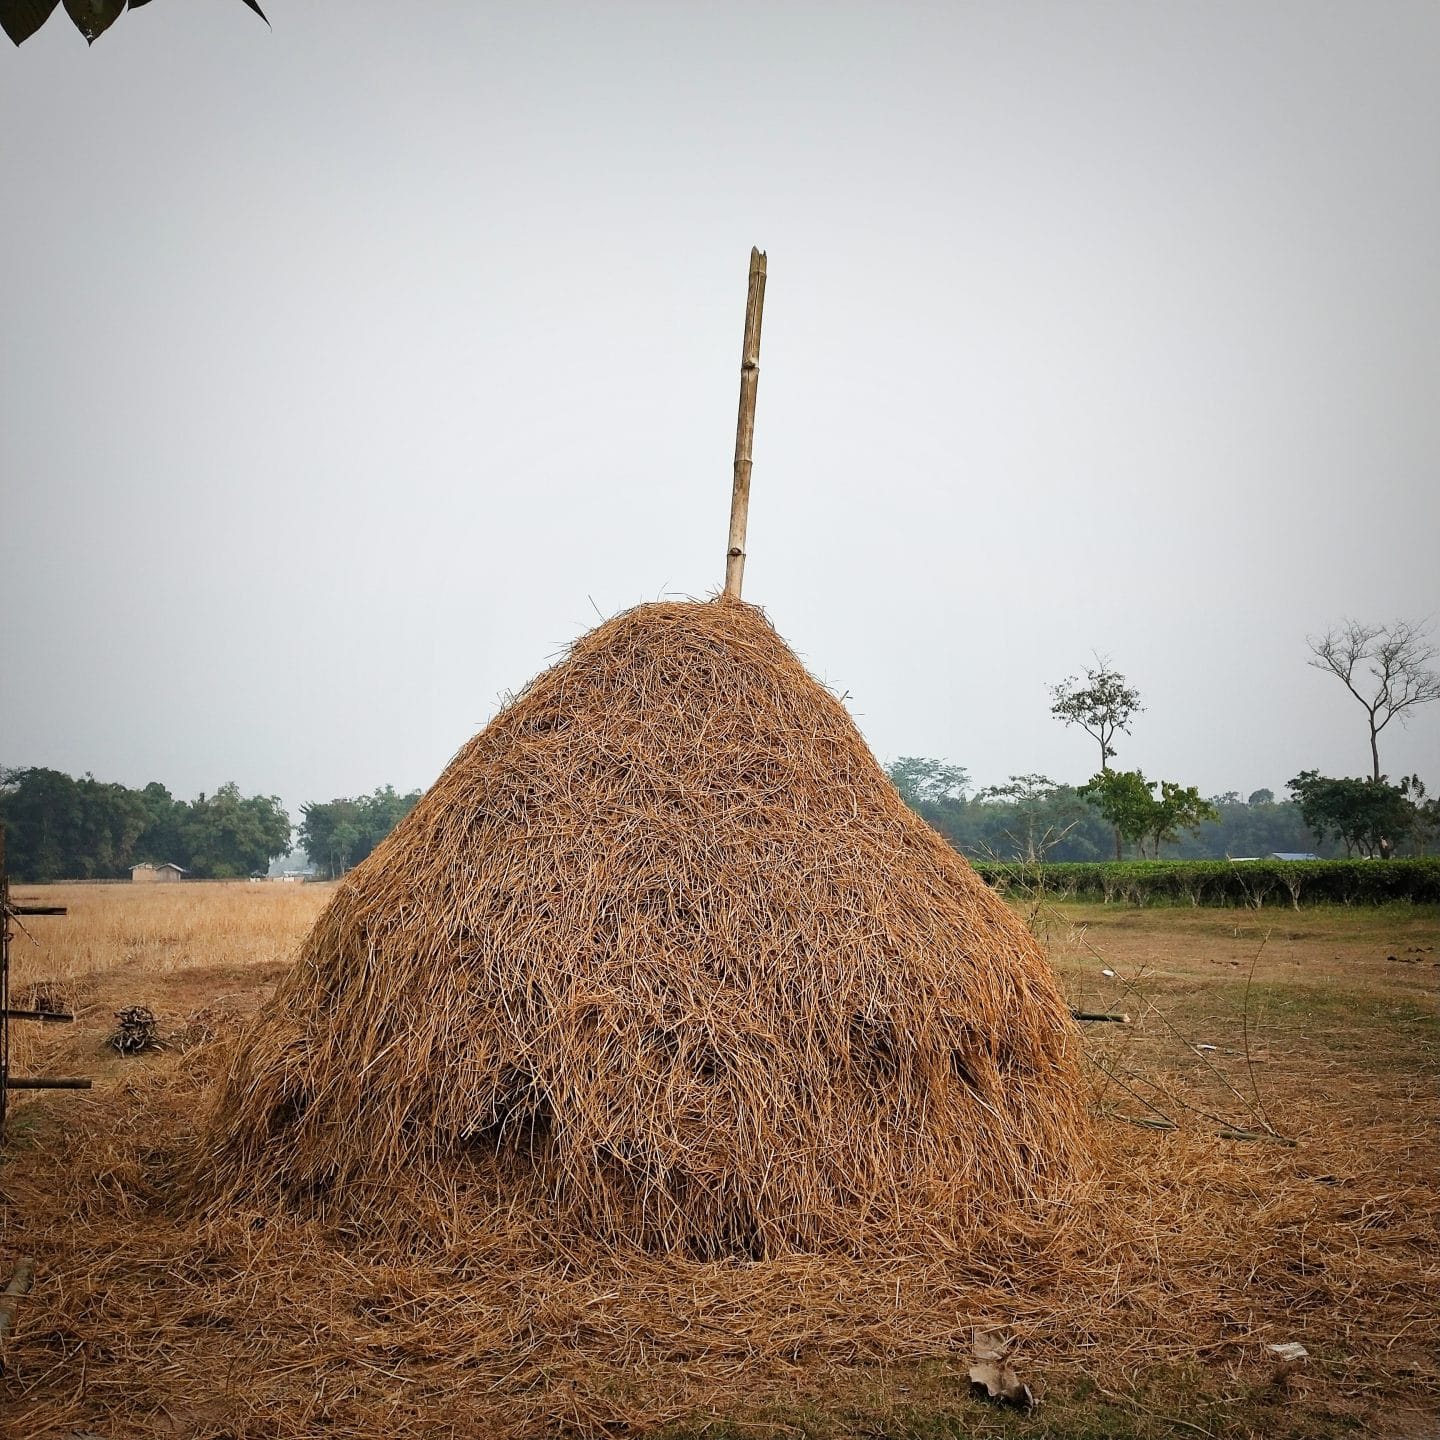 A_pile_of_straw_after_extracting_grains